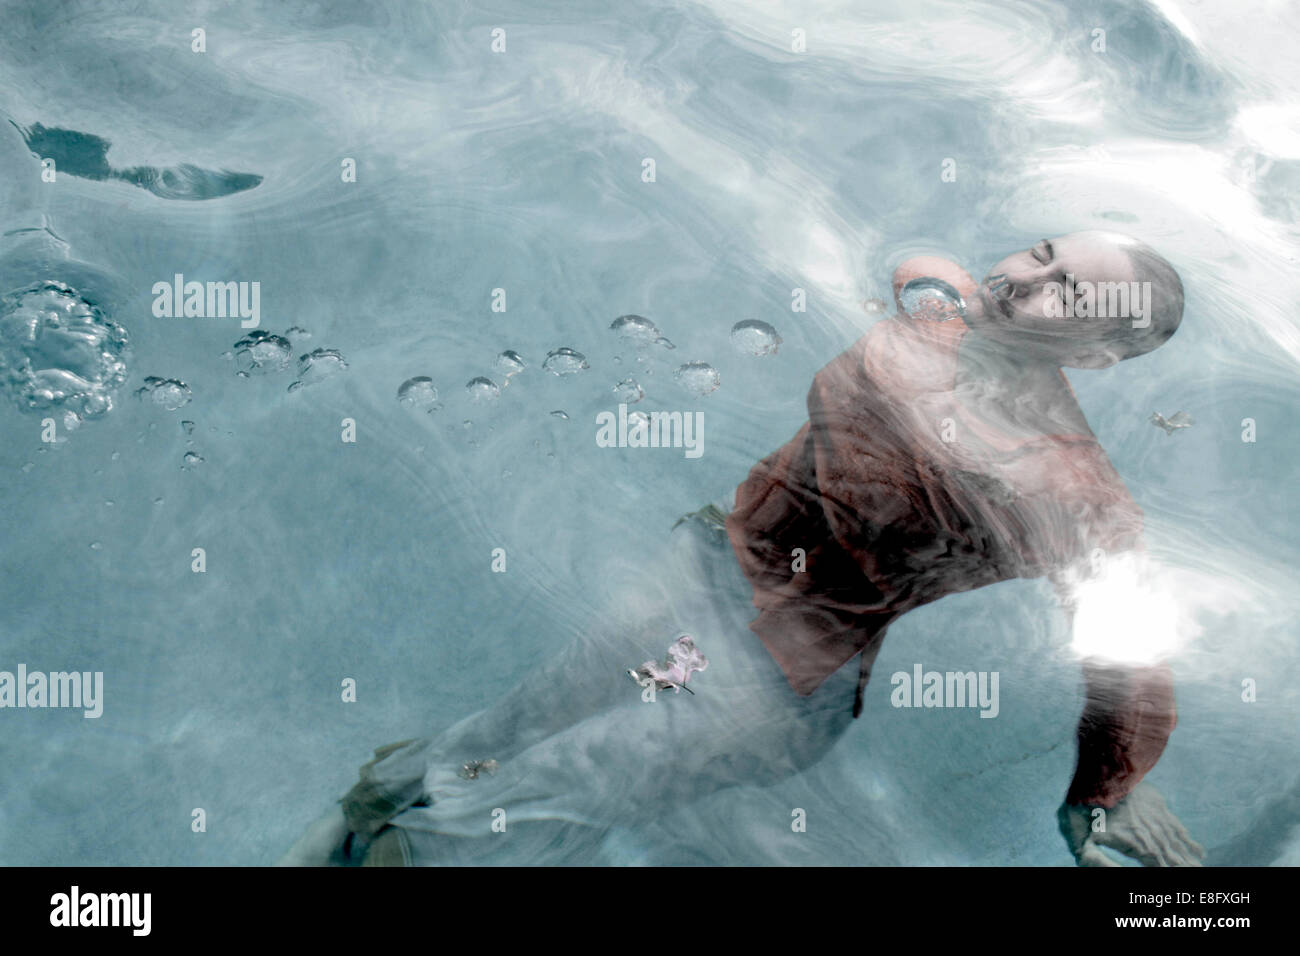 Fully clothed woman swimming underwater - Stock Image